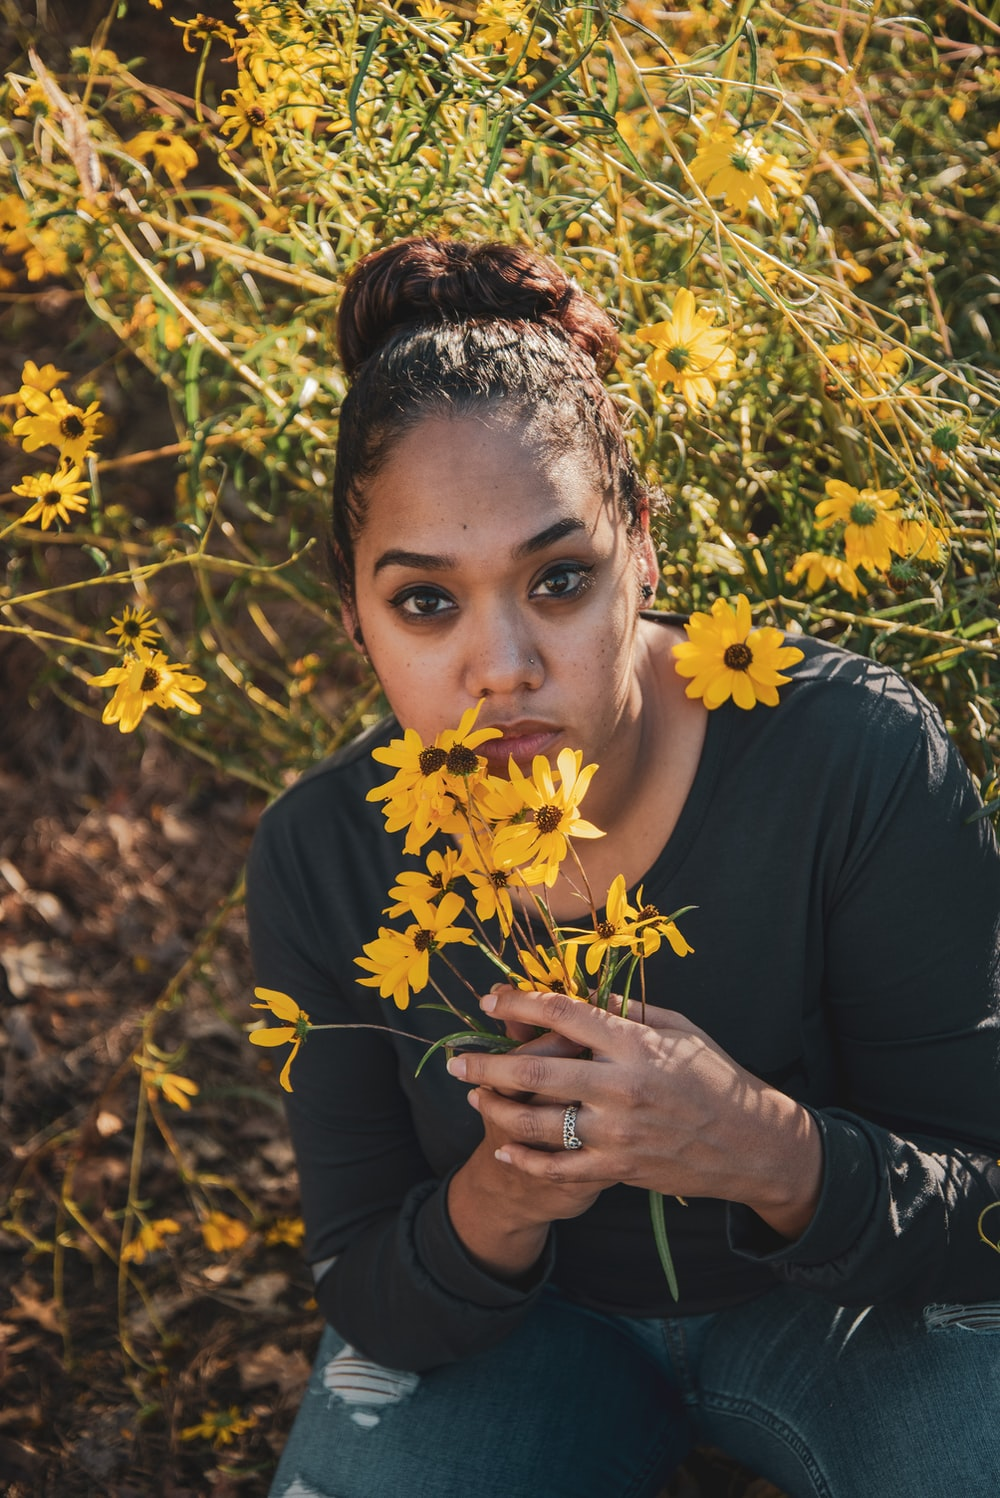 woman in black shirt holding yellow flowers